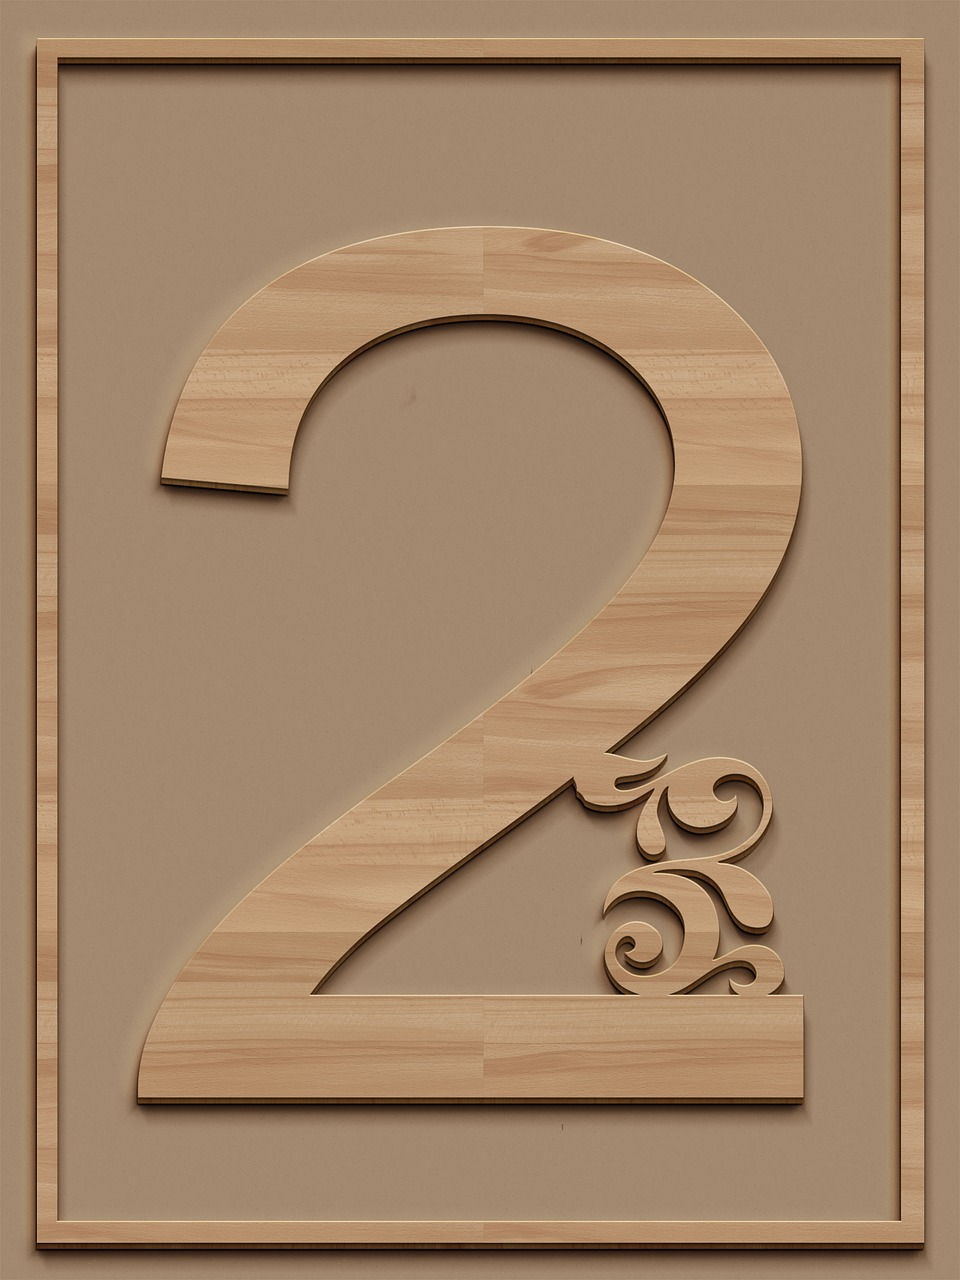 2 two- numbers from 1 to 10 images for printing, part 13